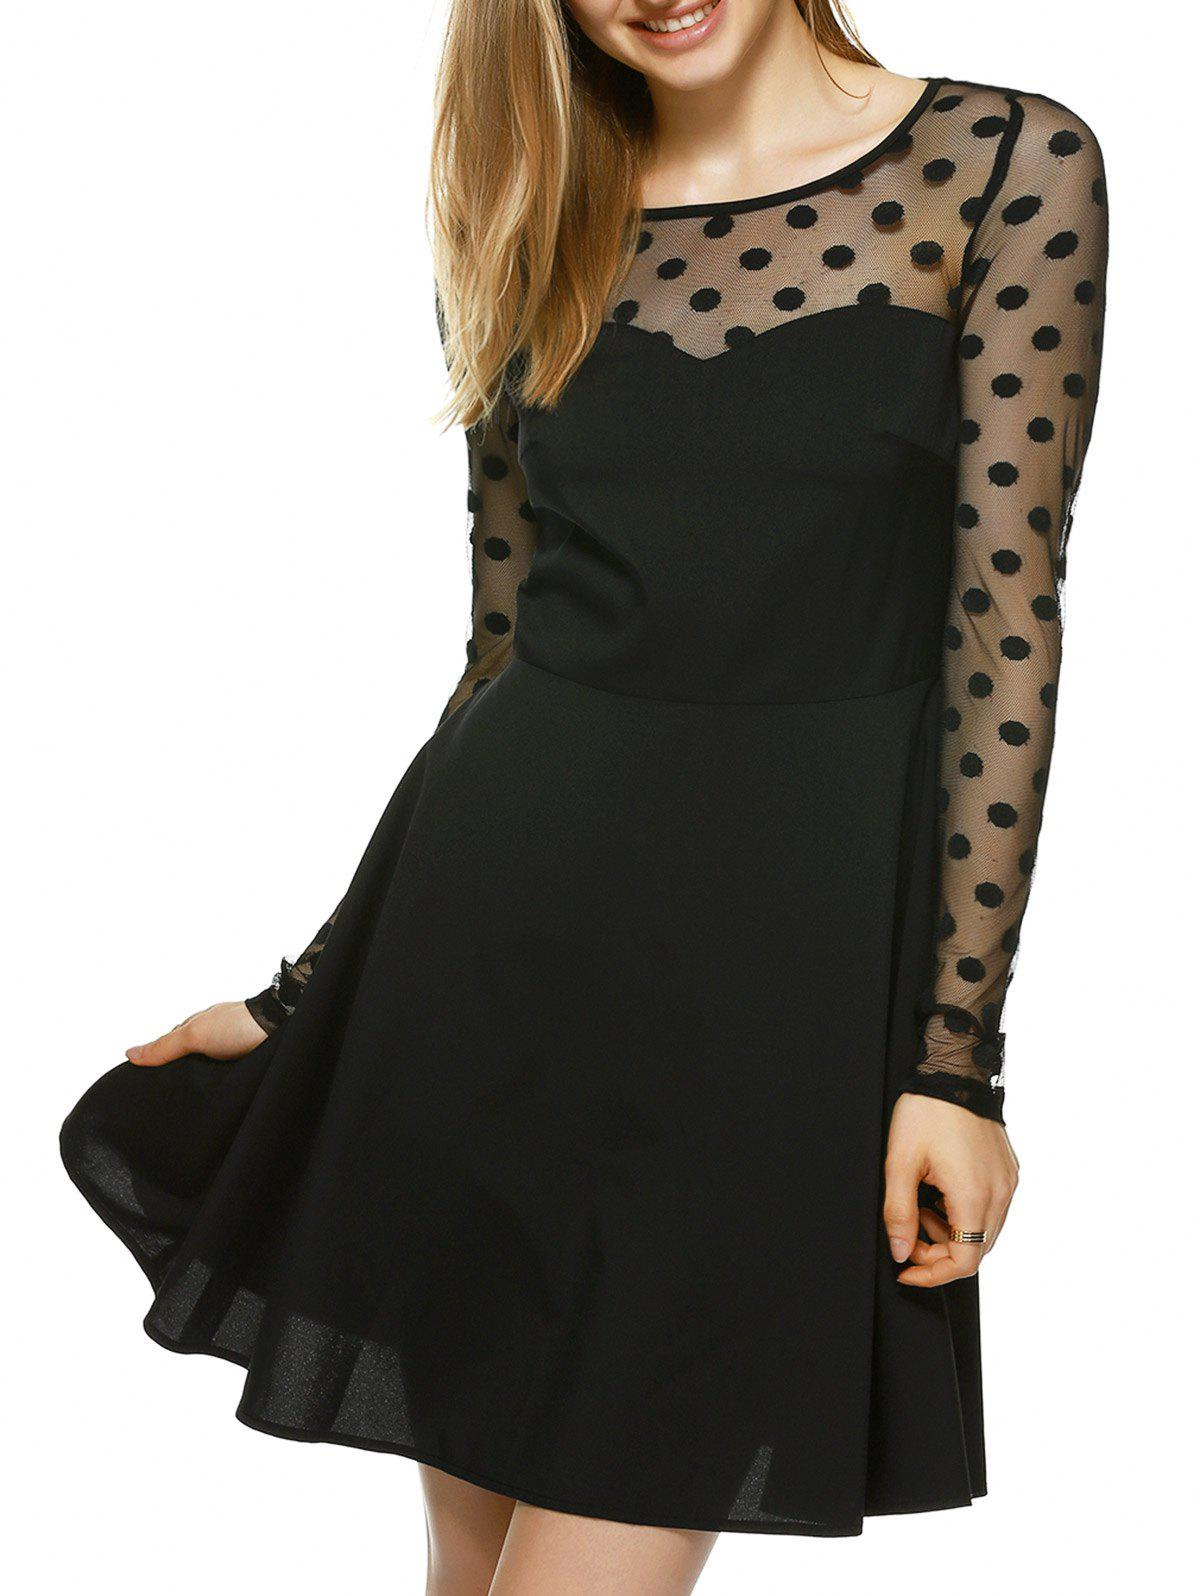 Alluring See-Through Cut Out Dress